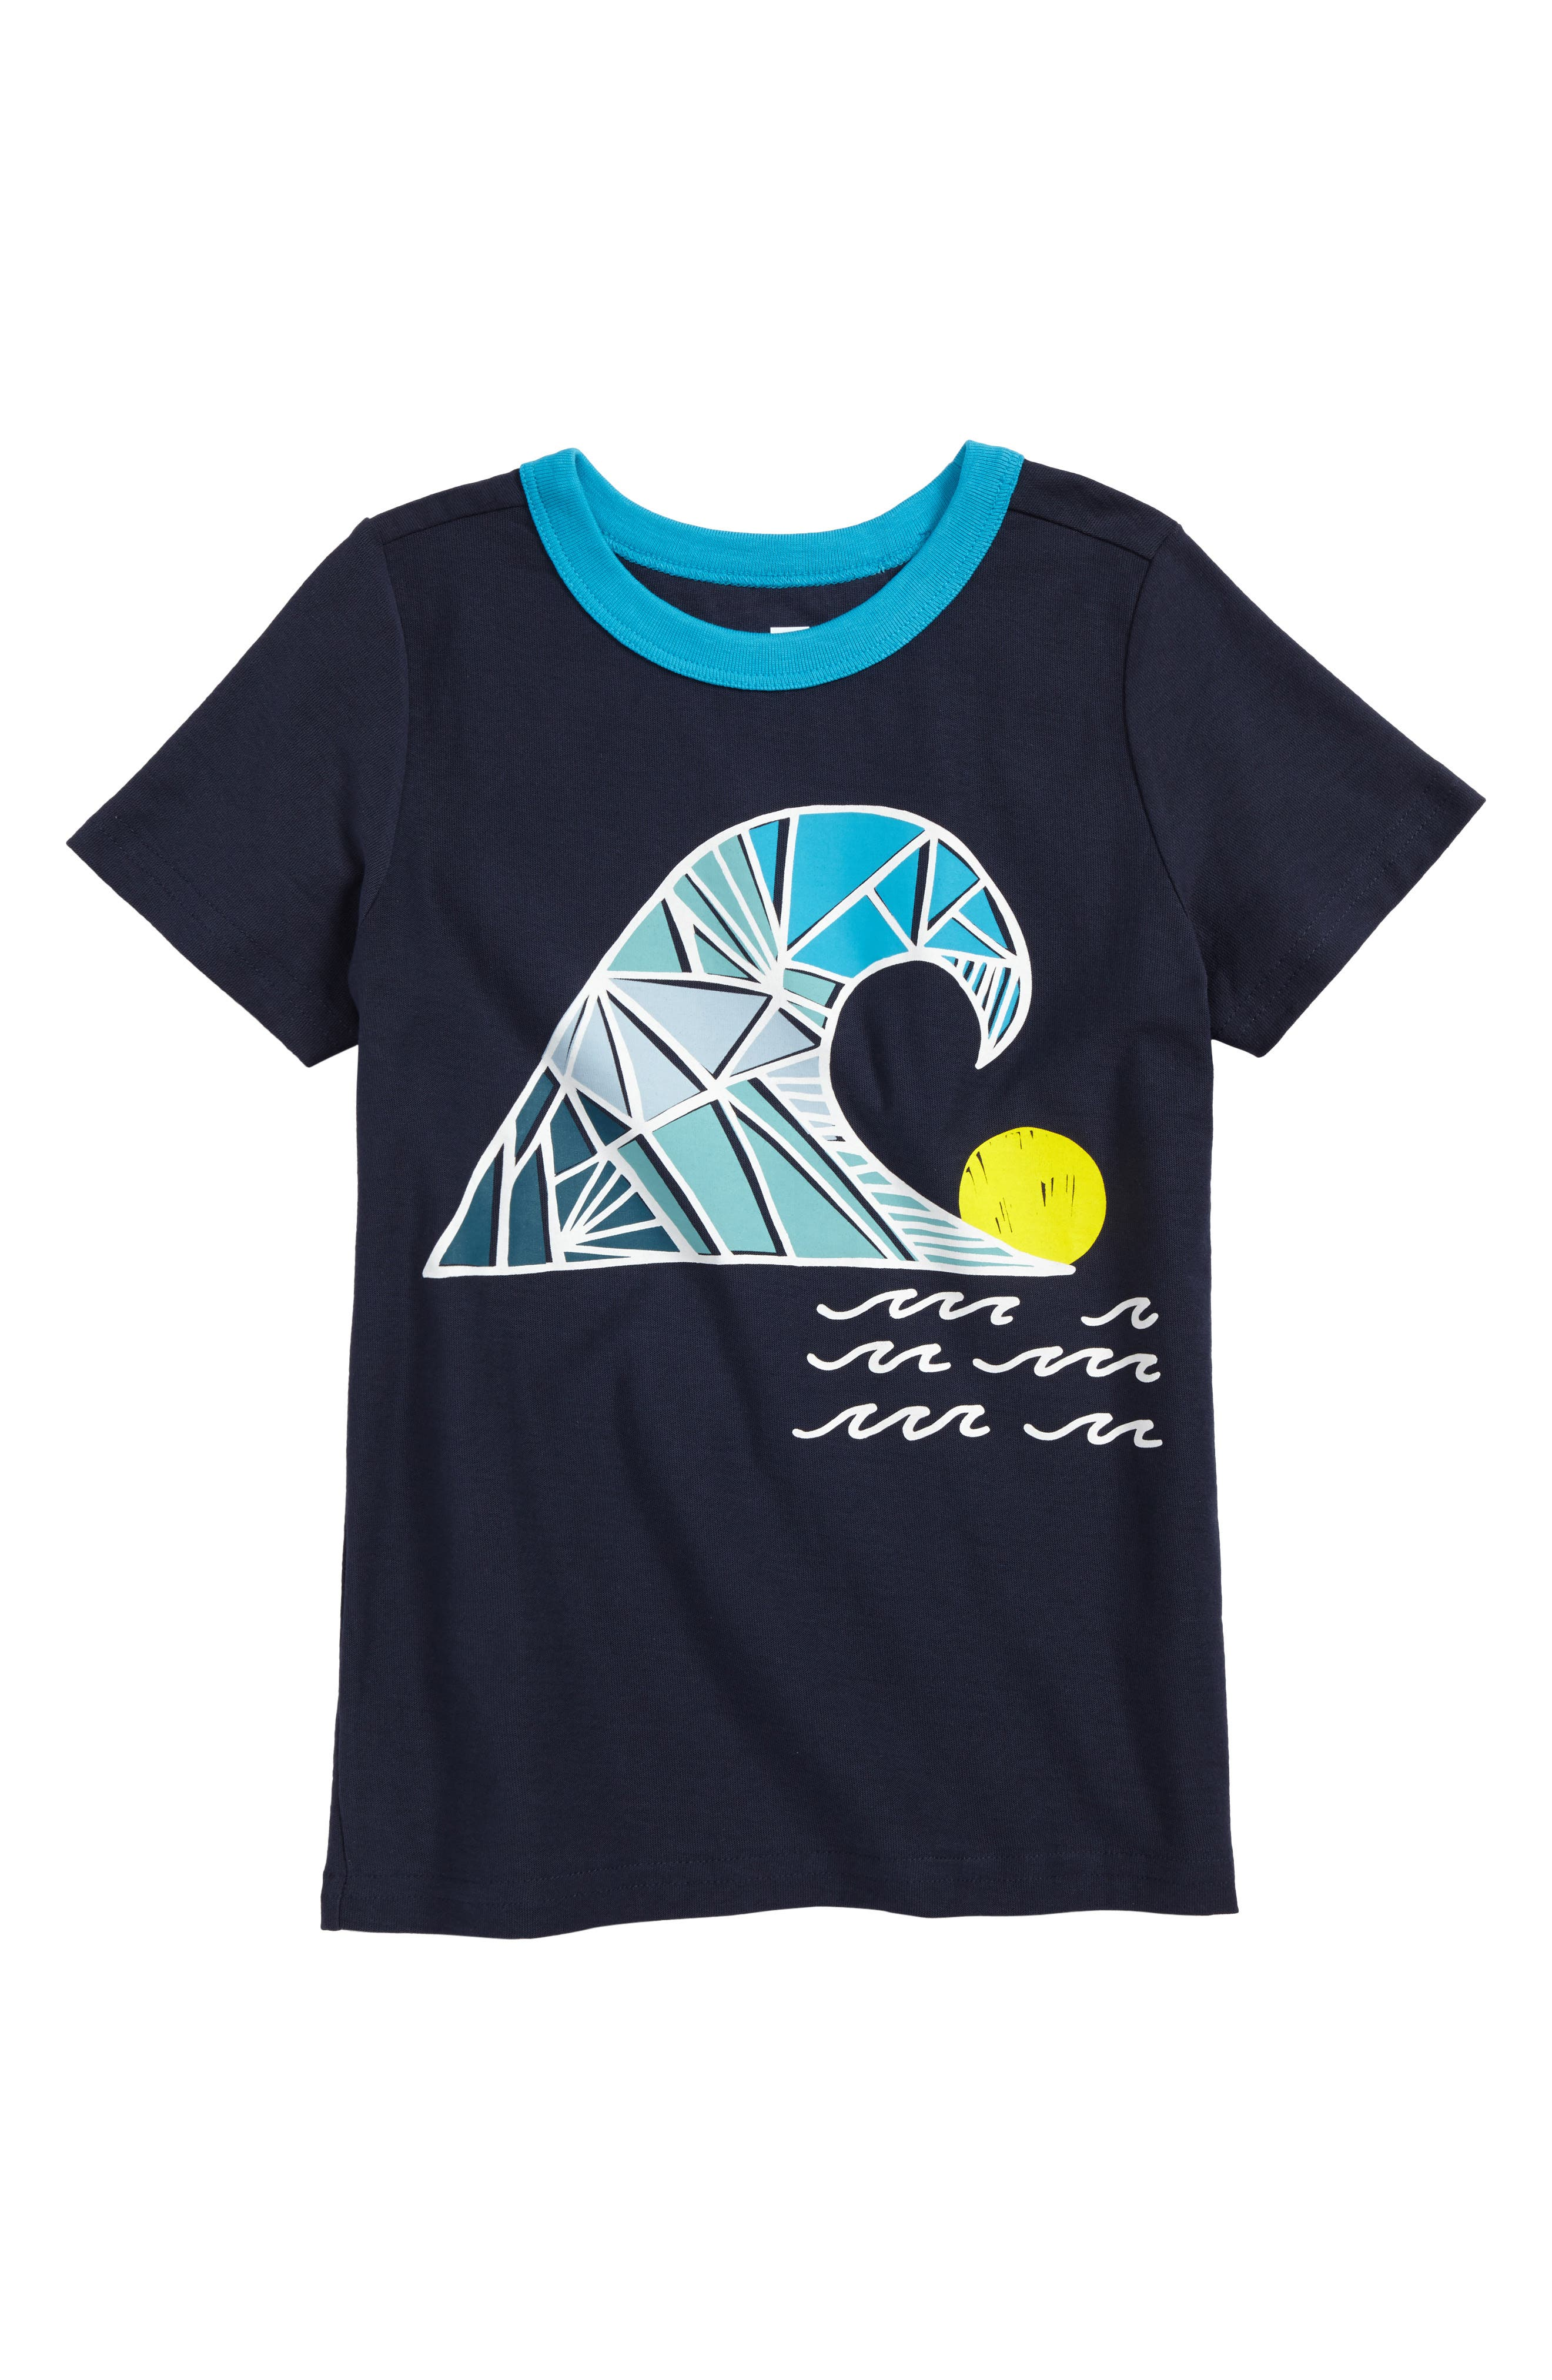 Main Image - Tea Collection Swell Day T-Shirt (Toddler Boys & Little Boys)